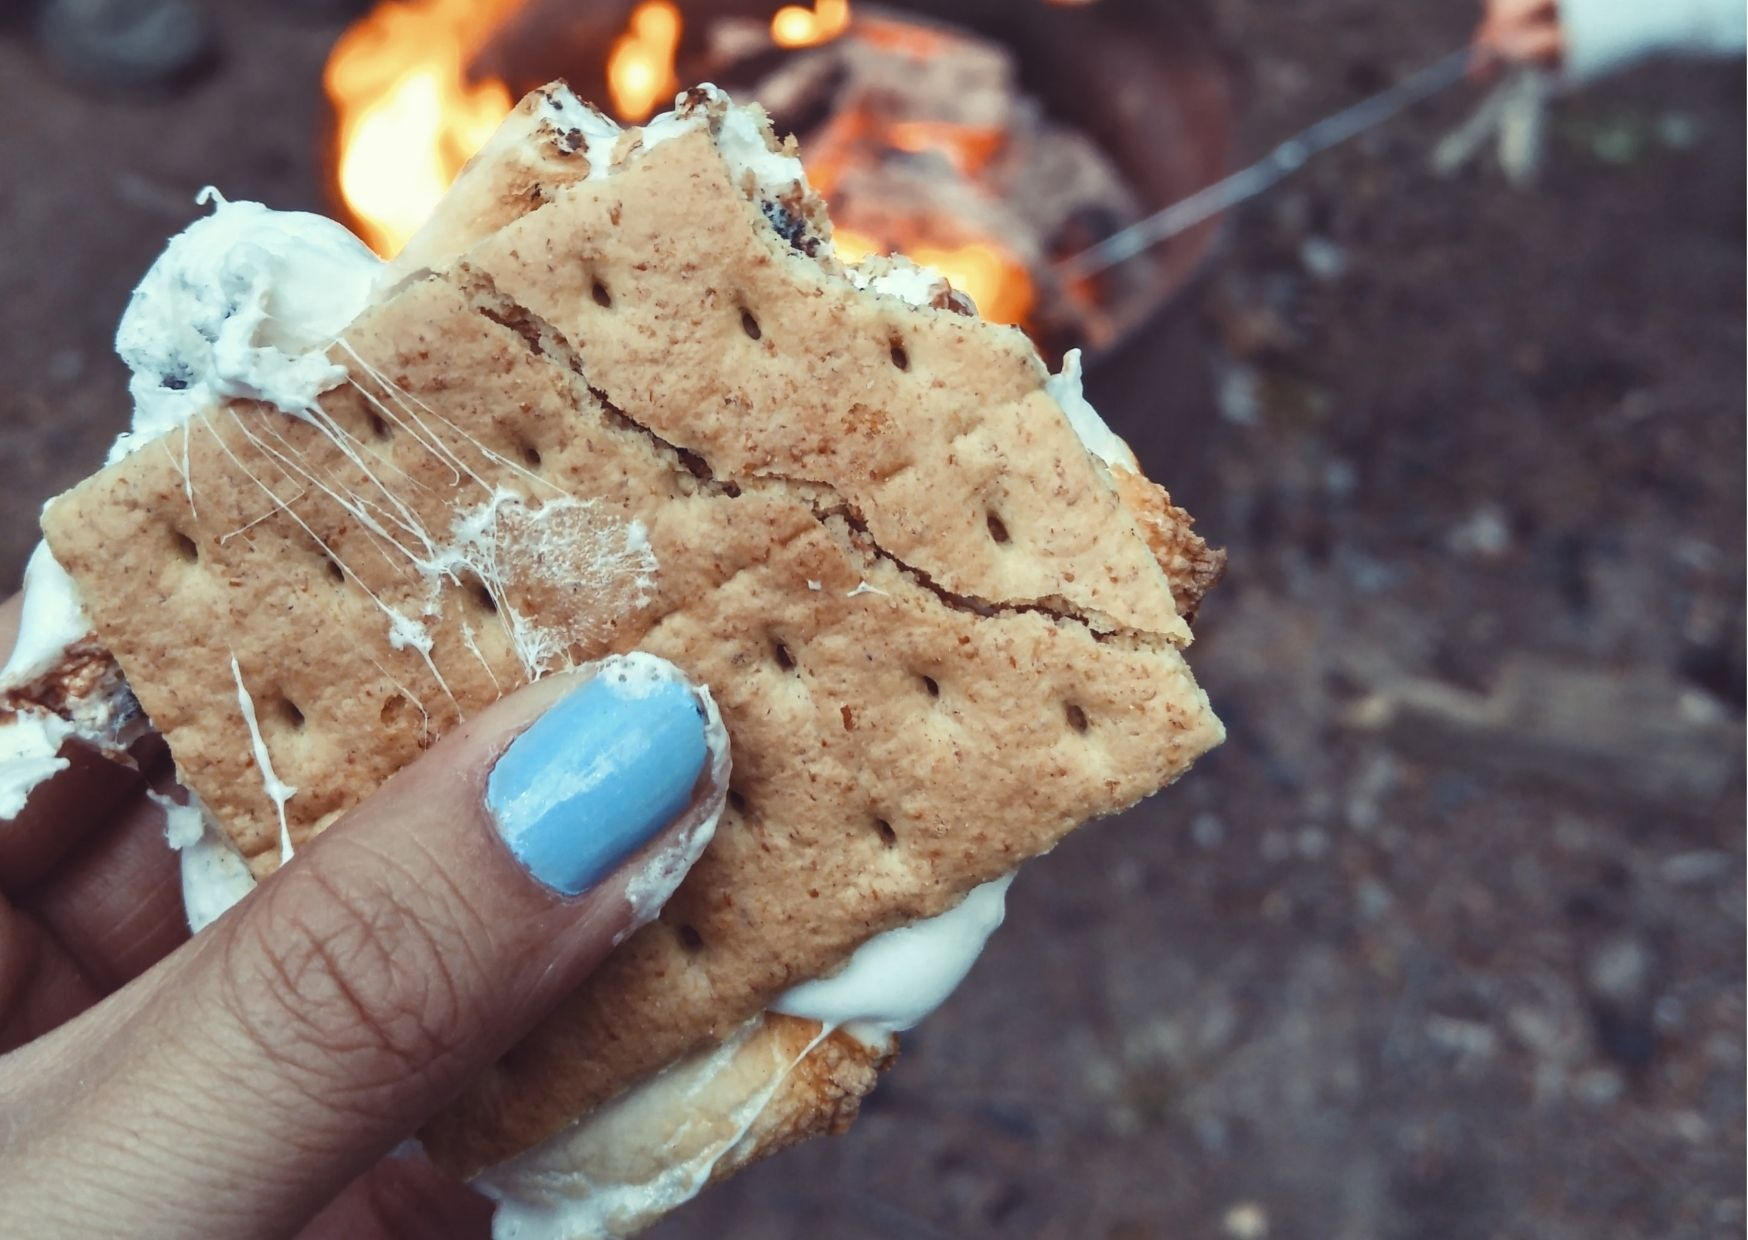 How to make chocolate s'mores